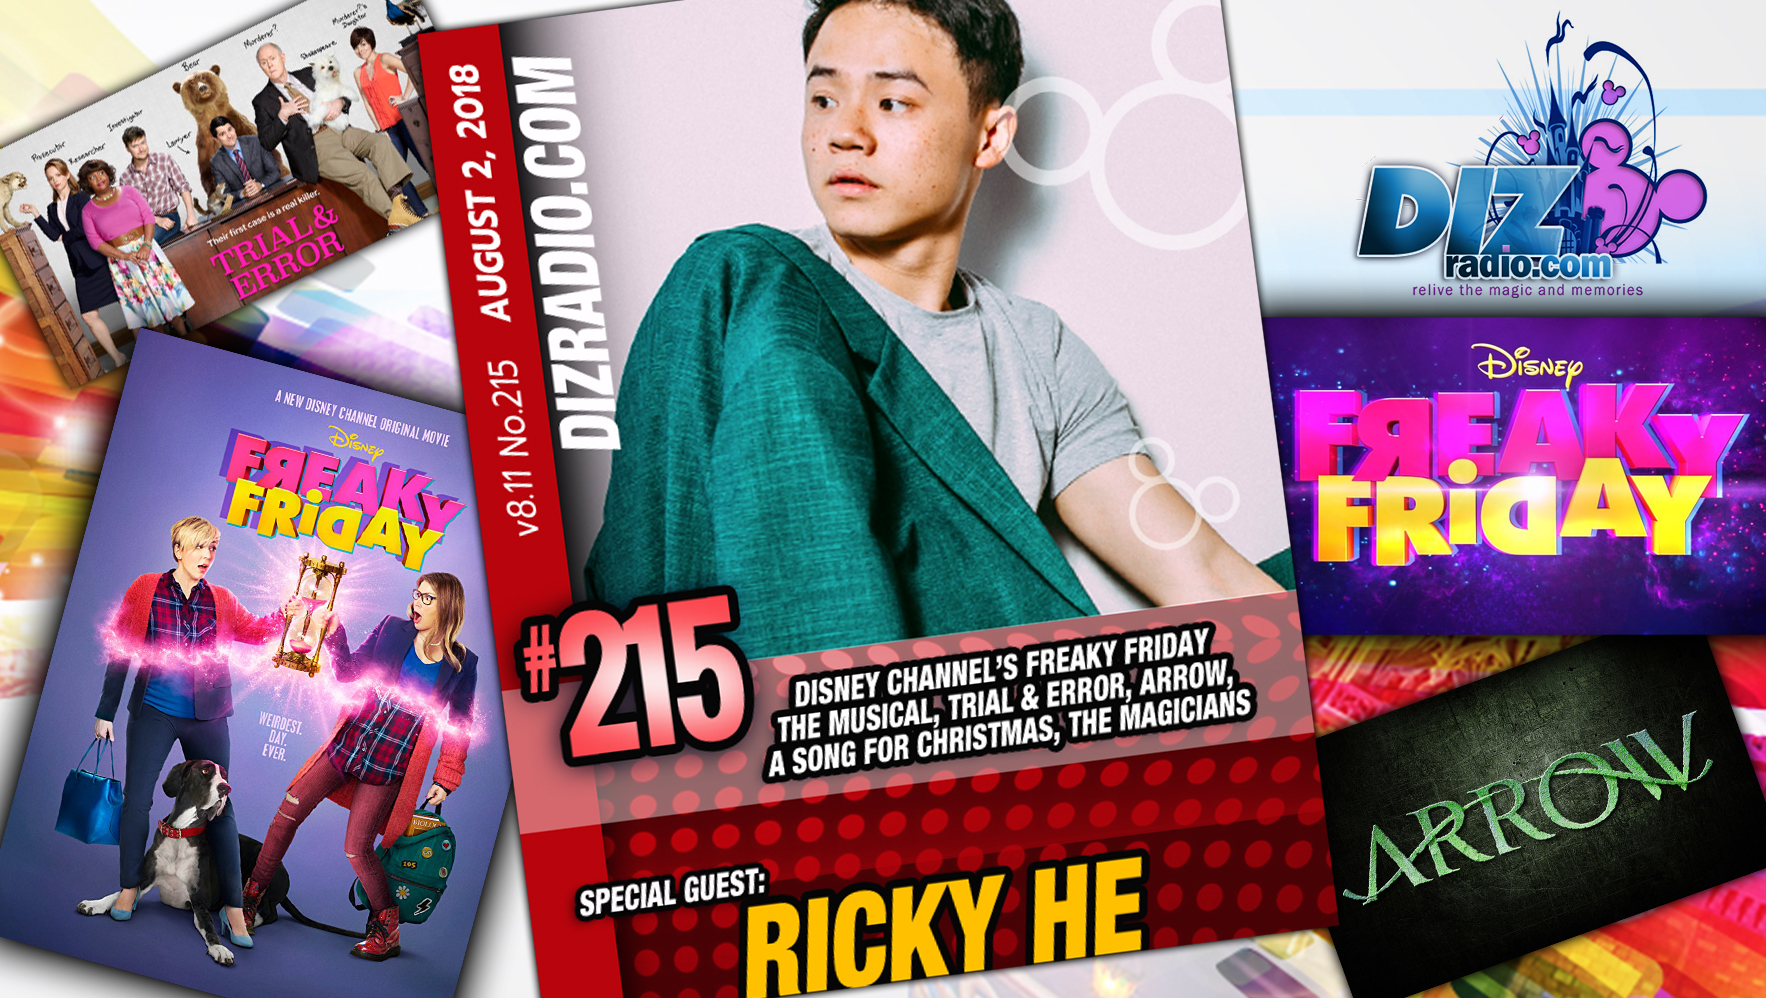 DisneyBlu's DizRadio Disney on Demand Show #215 w/ Special Guest RICKY HE (Disney Channel's Freaky Friday the Musical, Arrow, Trial & Error and more)